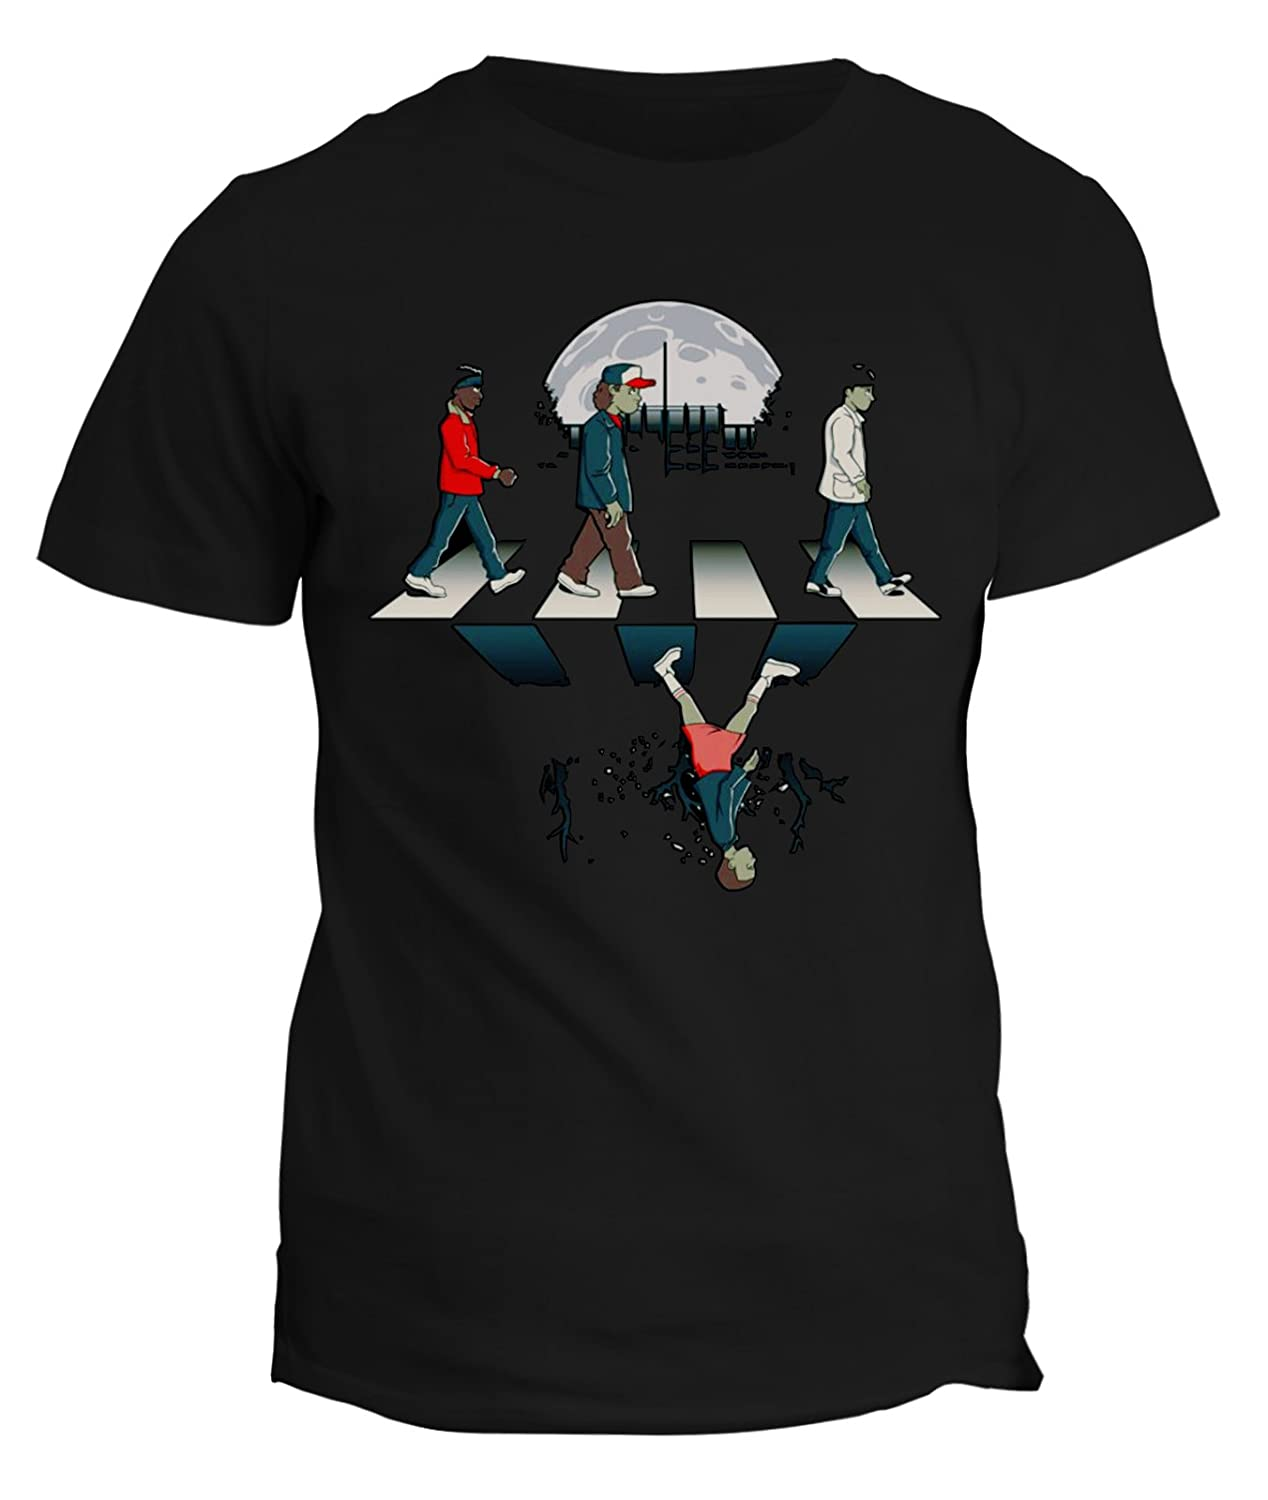 Tshirt Stranger Things - Abbey - walking - Upside down road - Stranger Things 2 - serie tv - in cotone fashwork fshST23